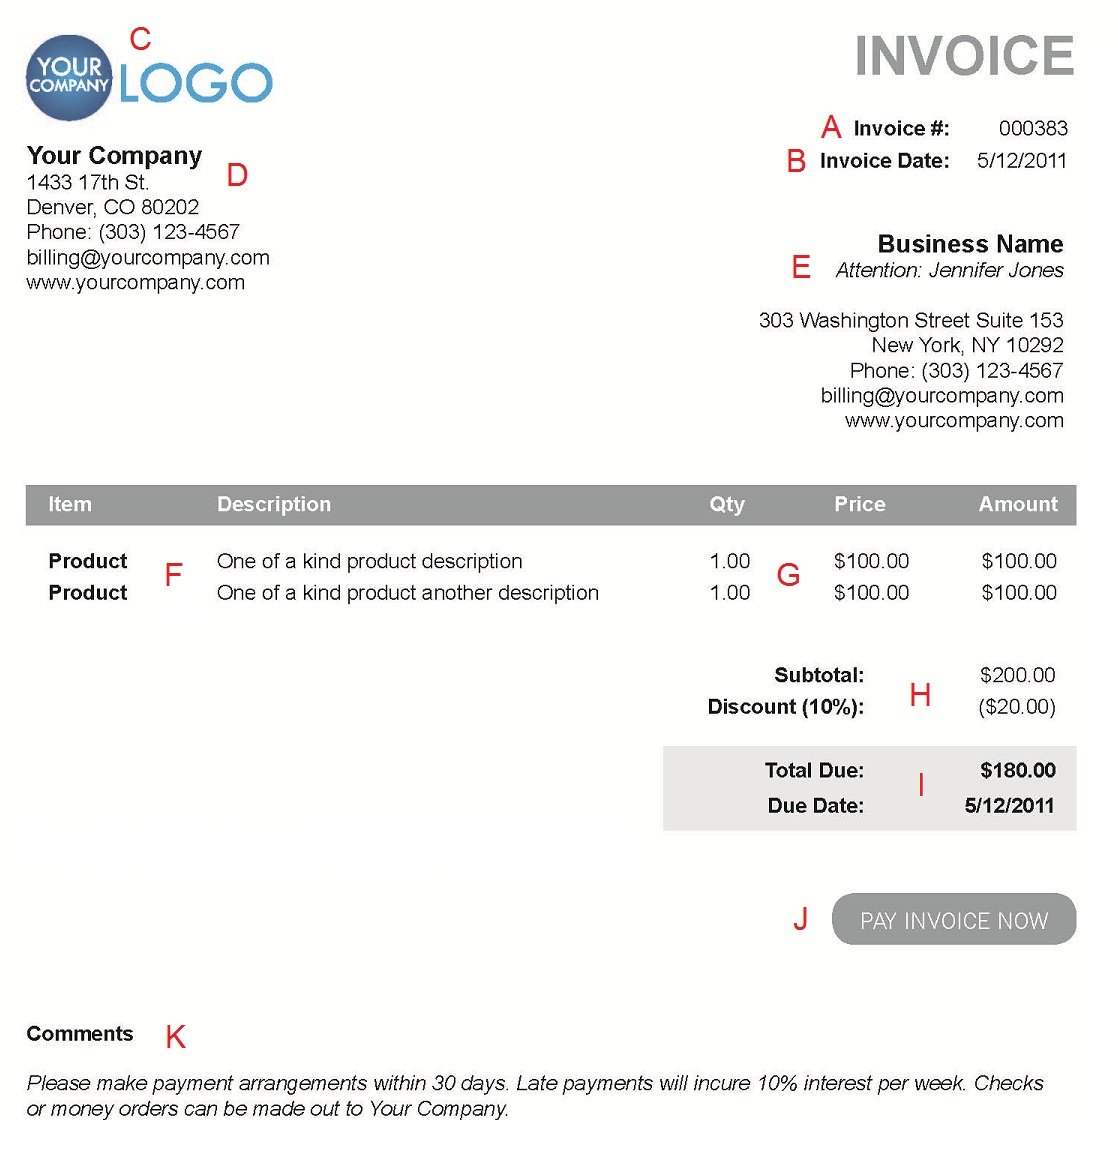 Theologygeekblogus  Splendid The  Different Sections Of An Electronic Payment Invoice With Outstanding A  With Delightful What Does Dealer Invoice Mean Also Invoice Numbering System In Addition How To Create Invoice In Quickbooks And Enterprise Invoice As Well As Fedex Commercial Invoice Form Additionally Square Up Invoice From Paysimplecom With Theologygeekblogus  Outstanding The  Different Sections Of An Electronic Payment Invoice With Delightful A  And Splendid What Does Dealer Invoice Mean Also Invoice Numbering System In Addition How To Create Invoice In Quickbooks From Paysimplecom